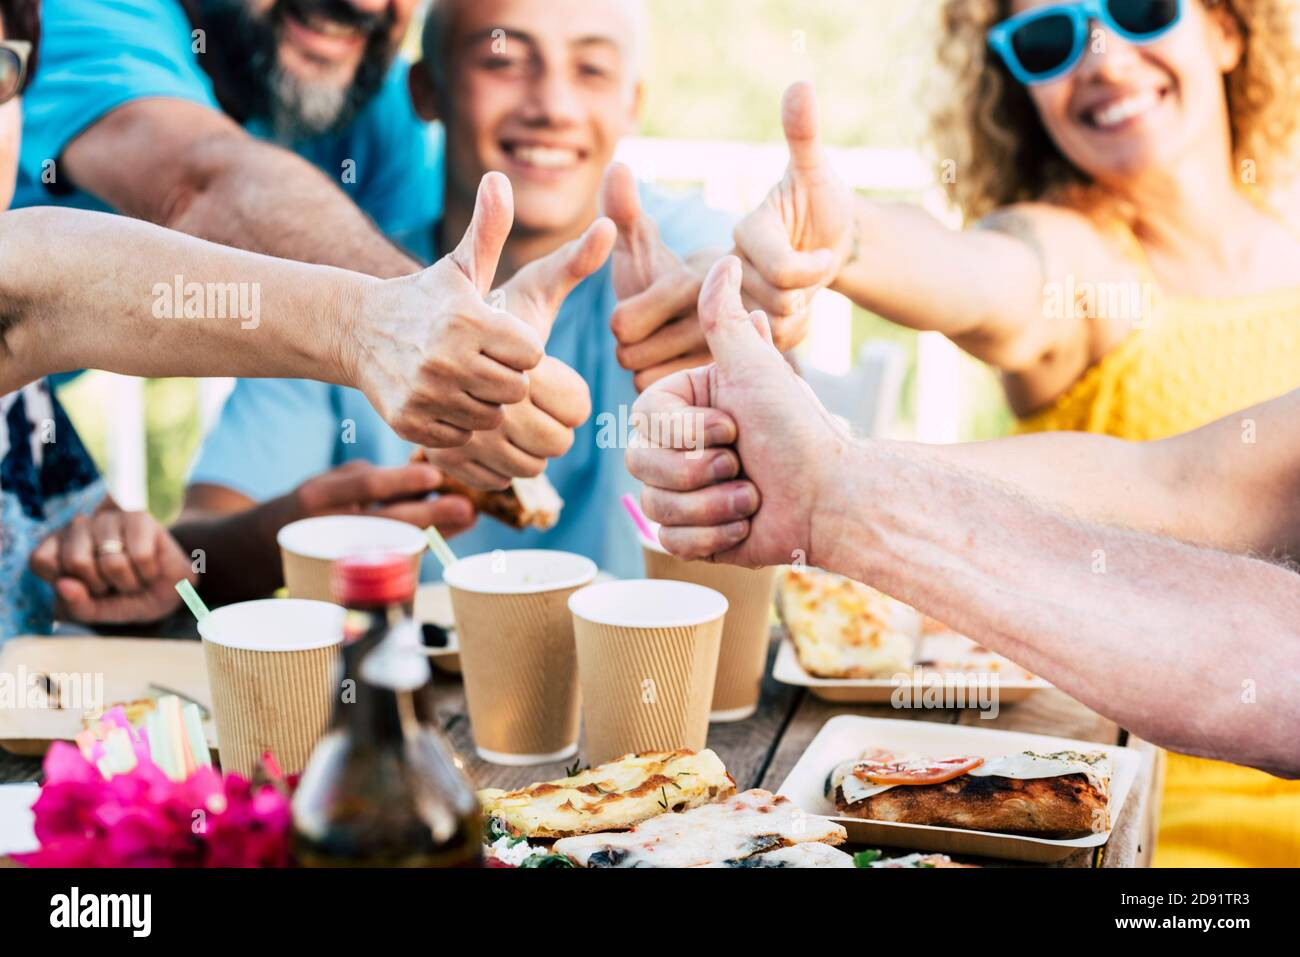 Group family caucasian people celebrate together with fun and enjoying food and drinks -. birthday party close up with inches up and  laughs in backgr Stock Photo